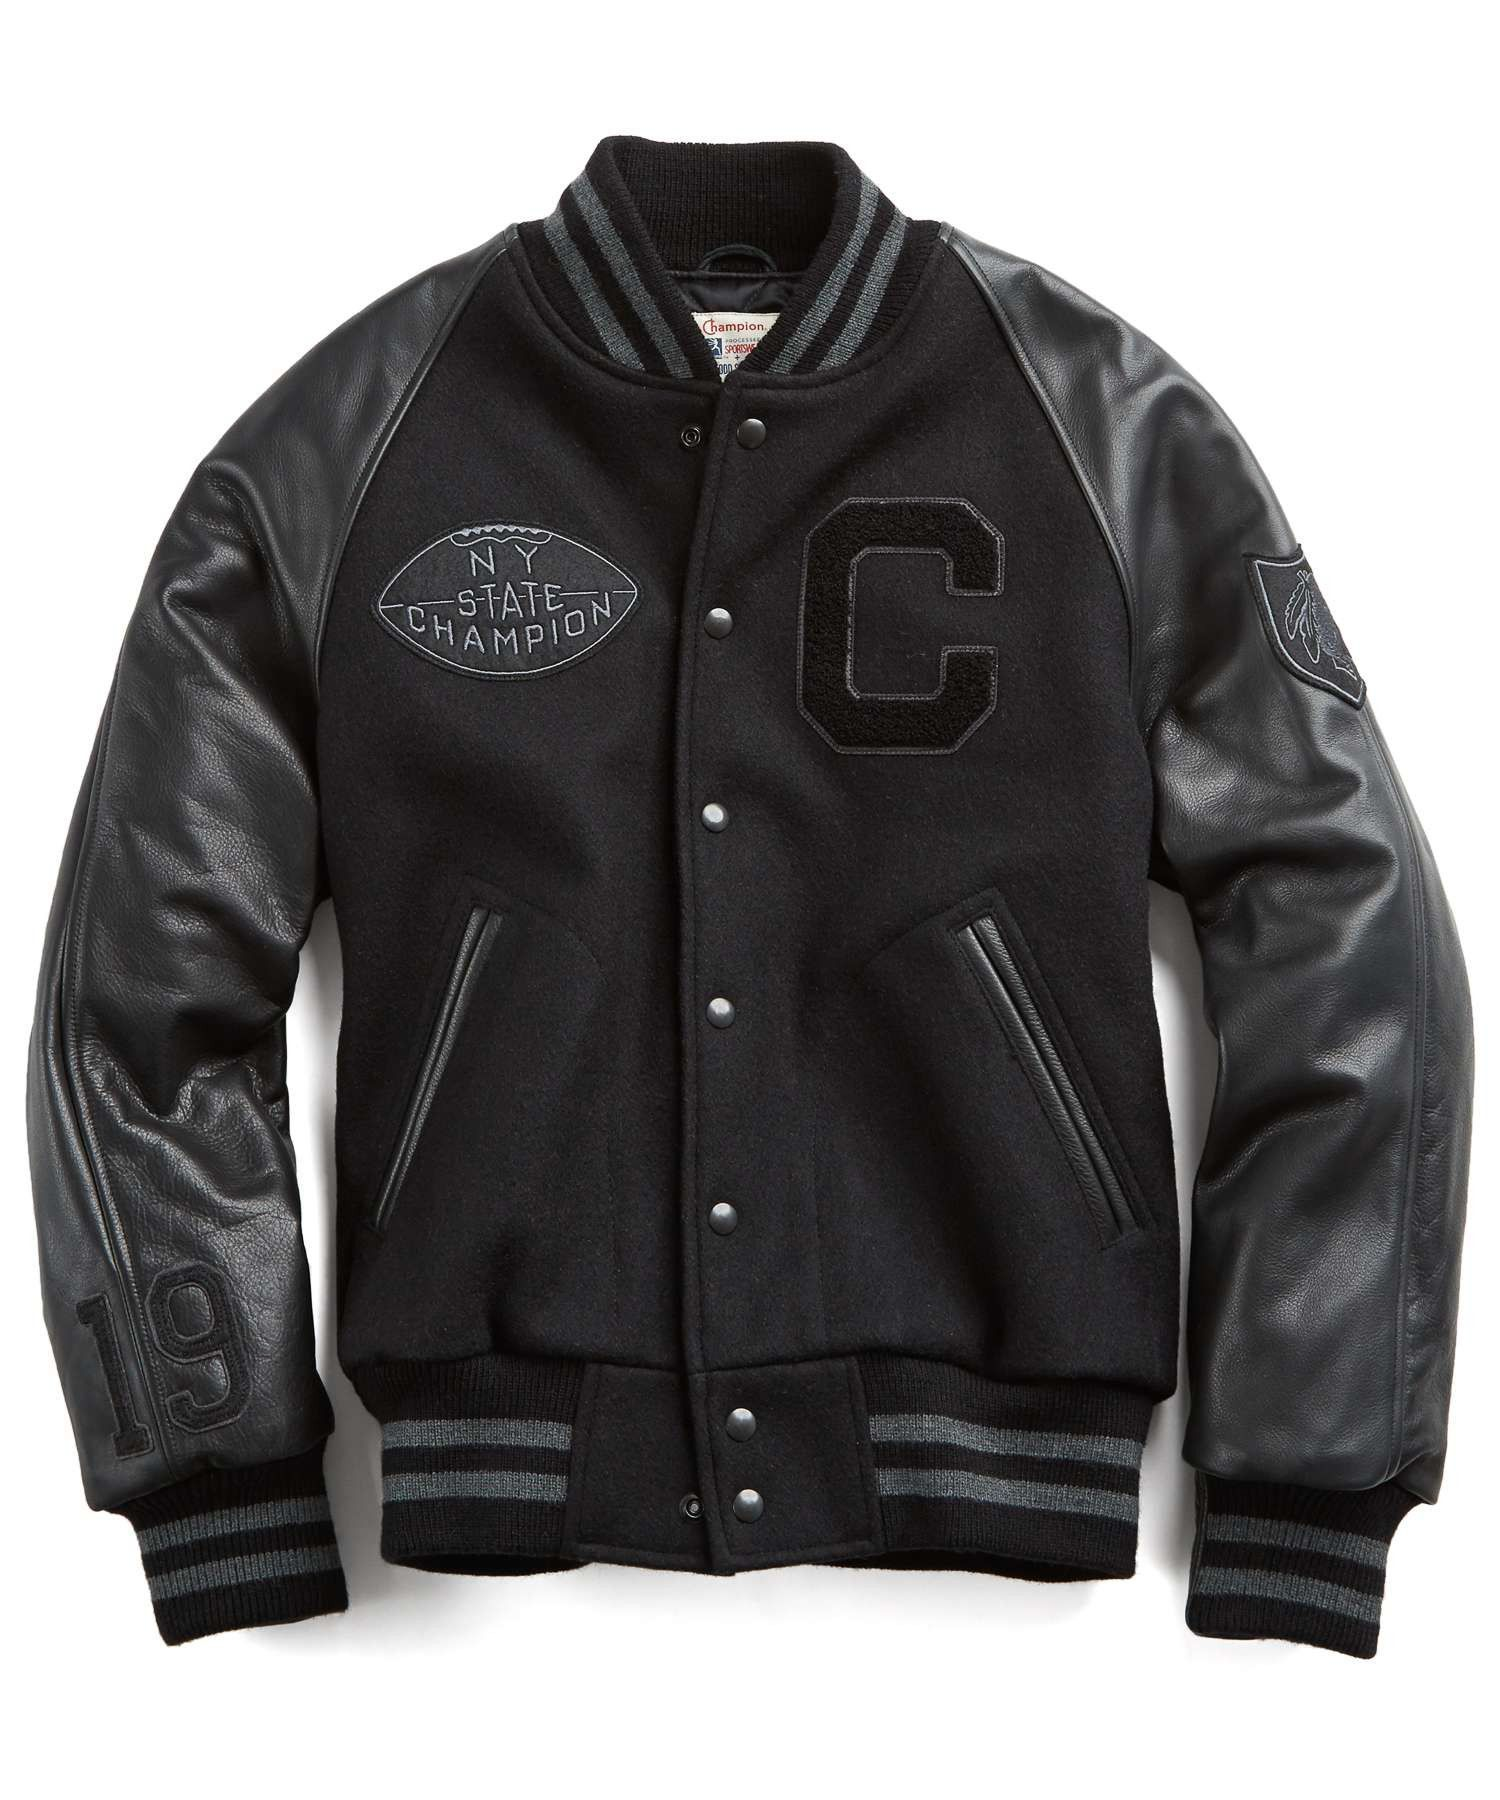 Old school cool varsity jacket. Wool body with leather